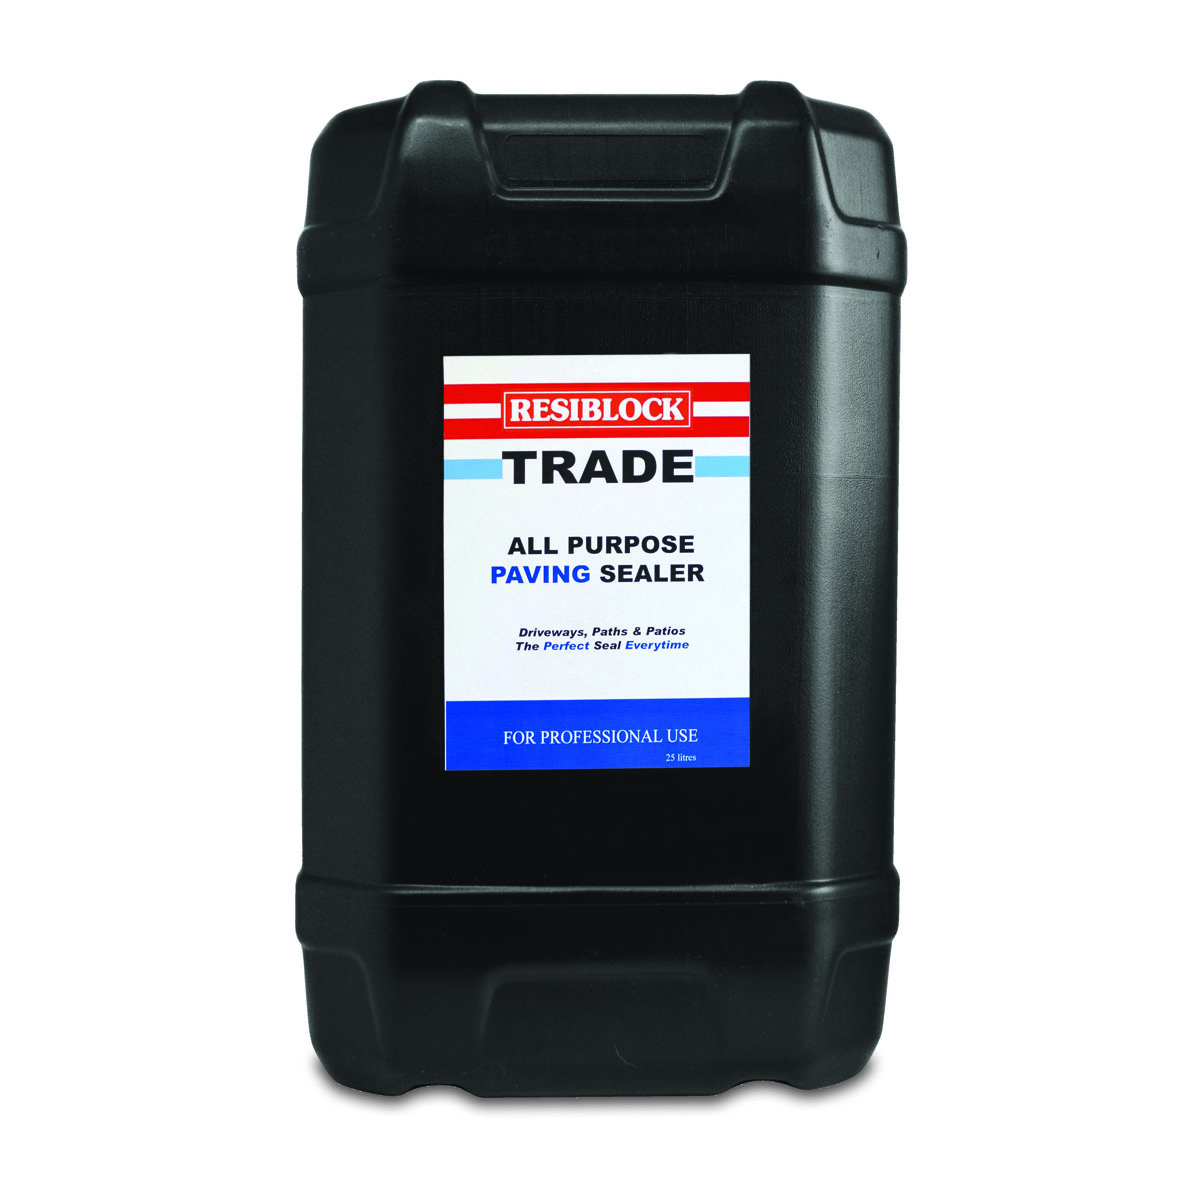 Trade - All Purpose Paving Sealer